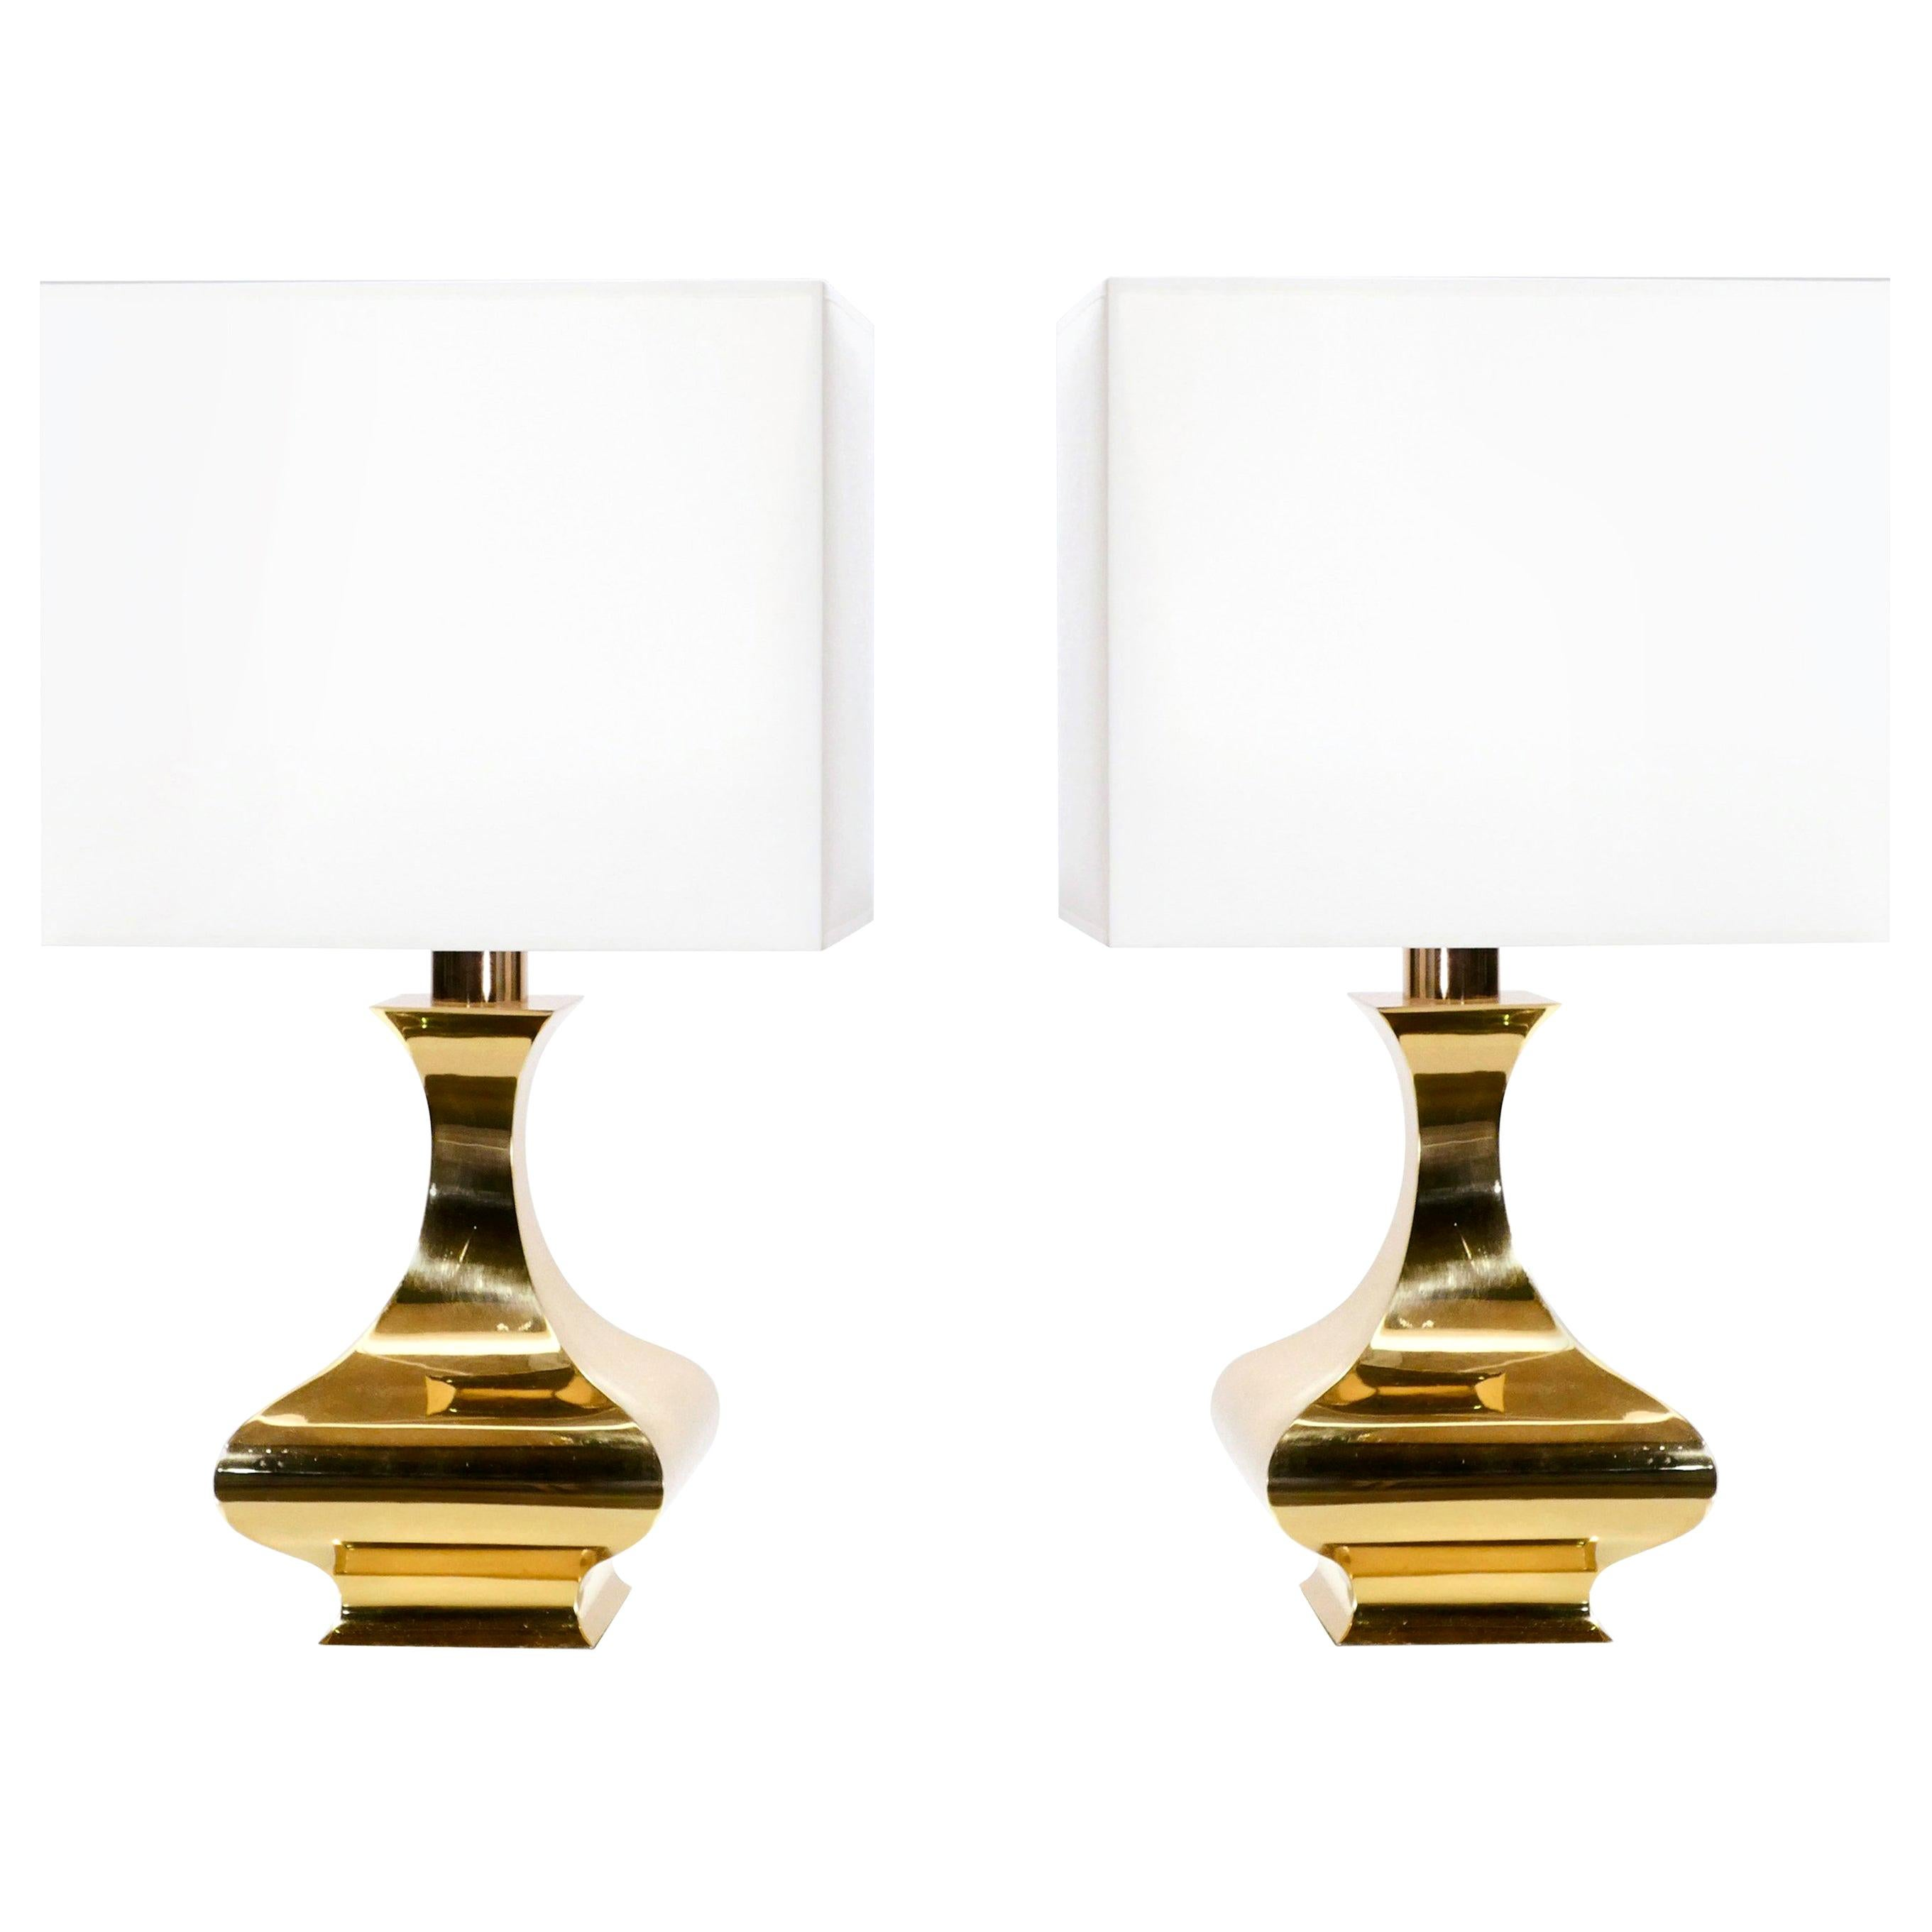 Rare Pair of Maria Pergay Brass Table Lamps, 1970s